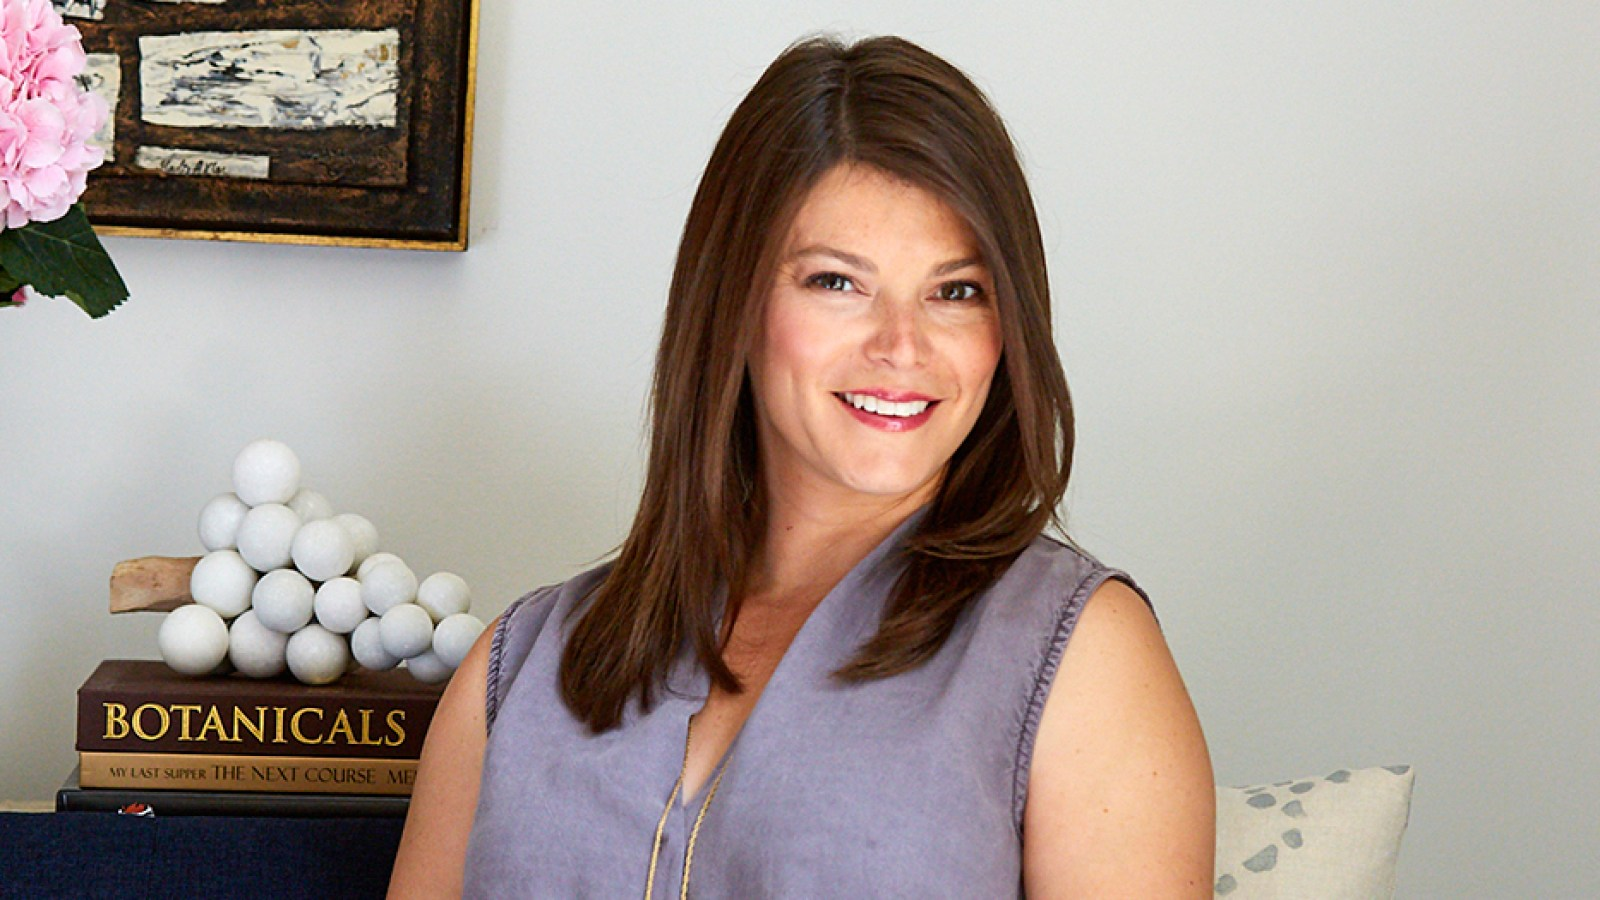 Top Chef Judge Gail Simmons Shares Tips For Best Weekend Brunch